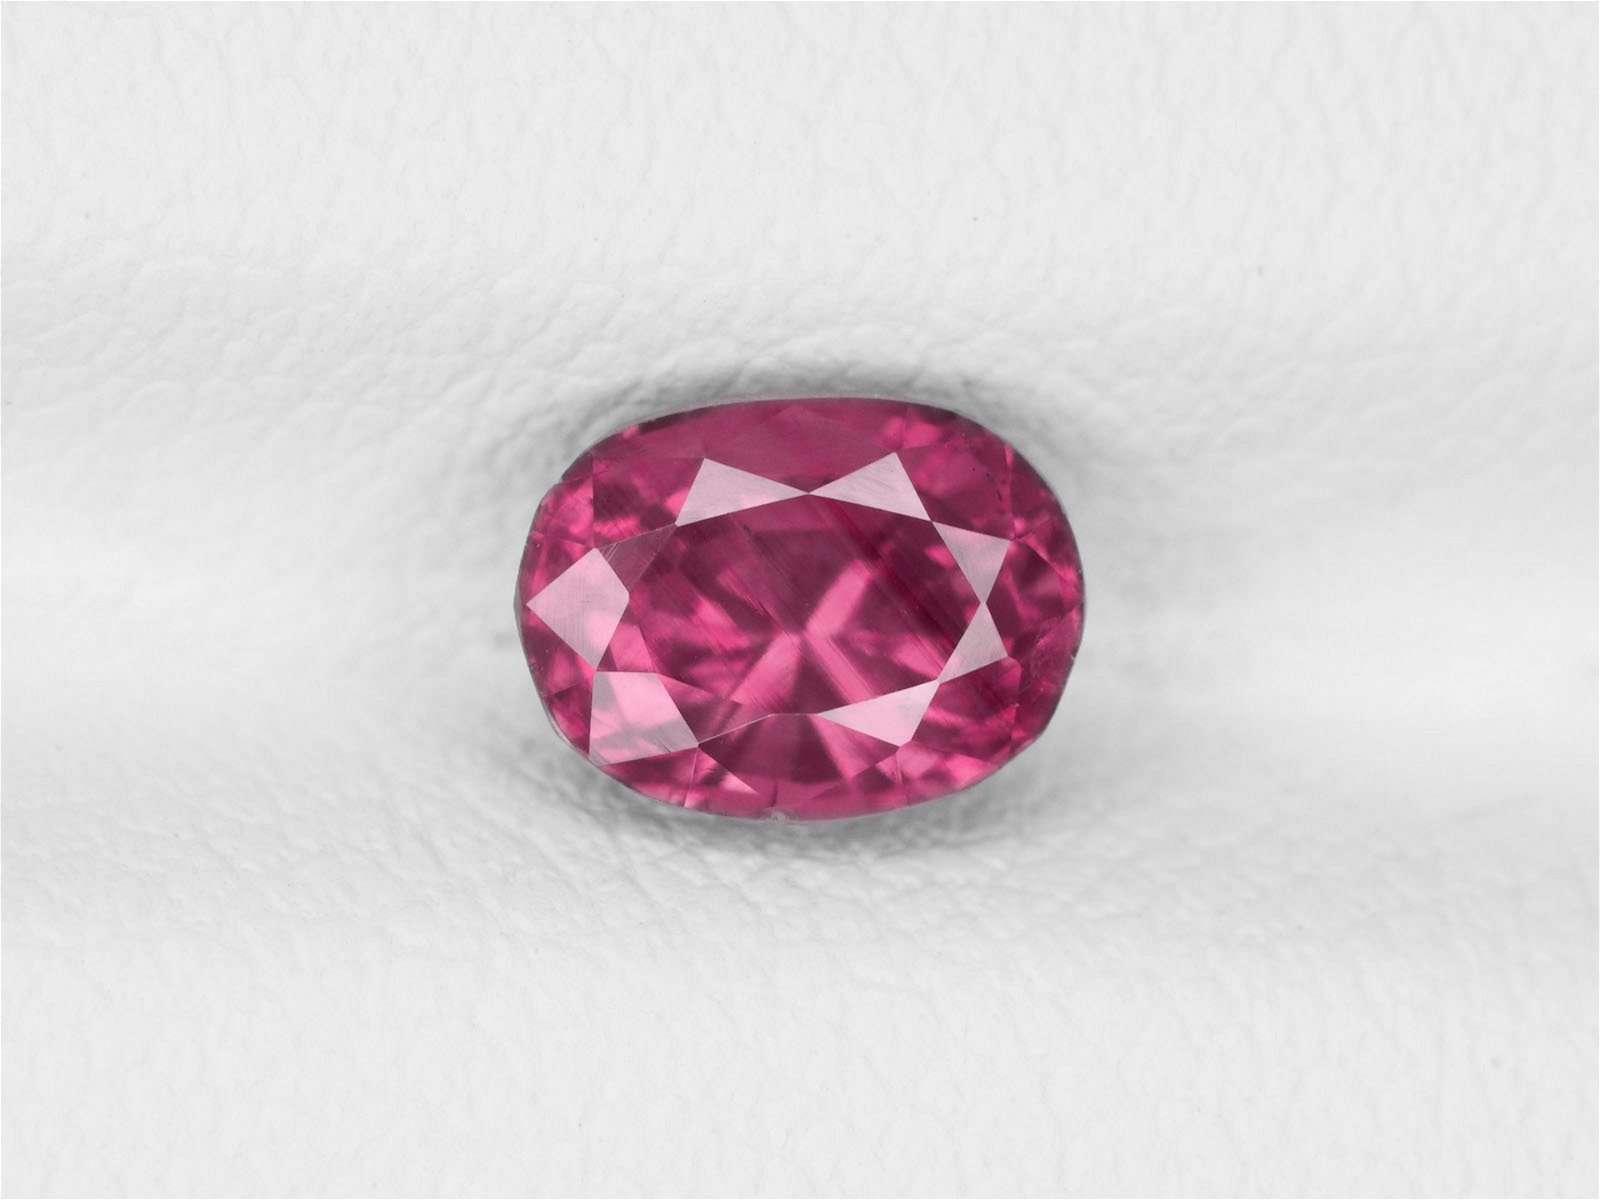 Pink Sapphire, 1.18ct, Mined in Pakistan, Certified by